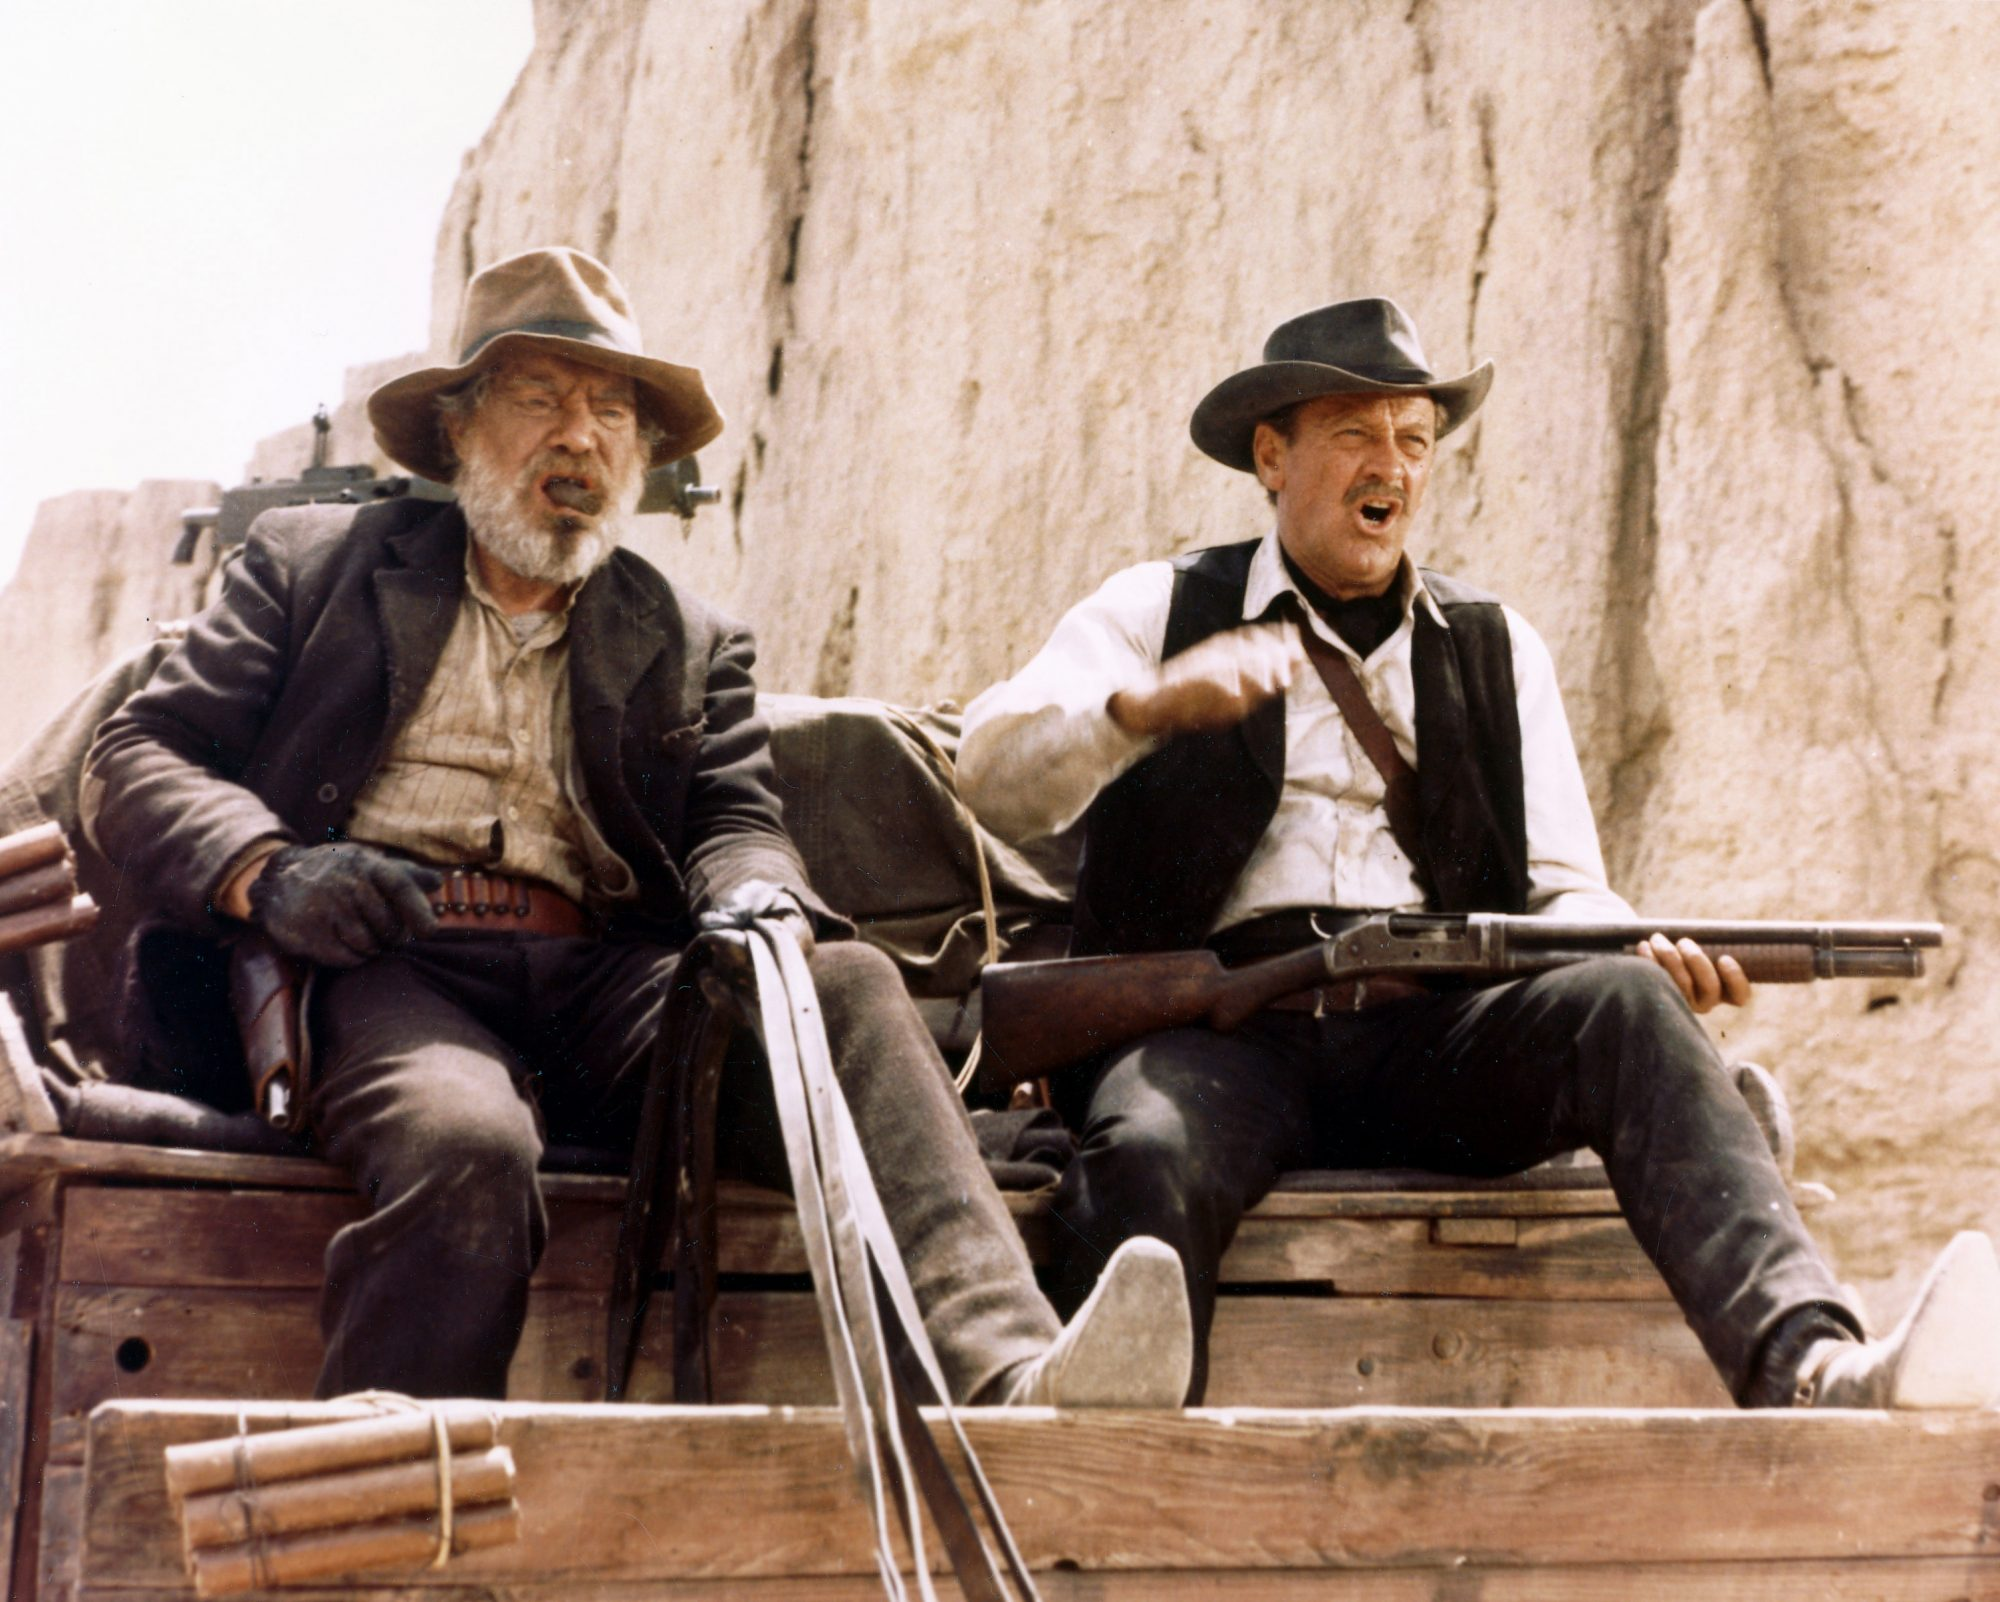 5 Western Movies To Watch On Netflix This Summer